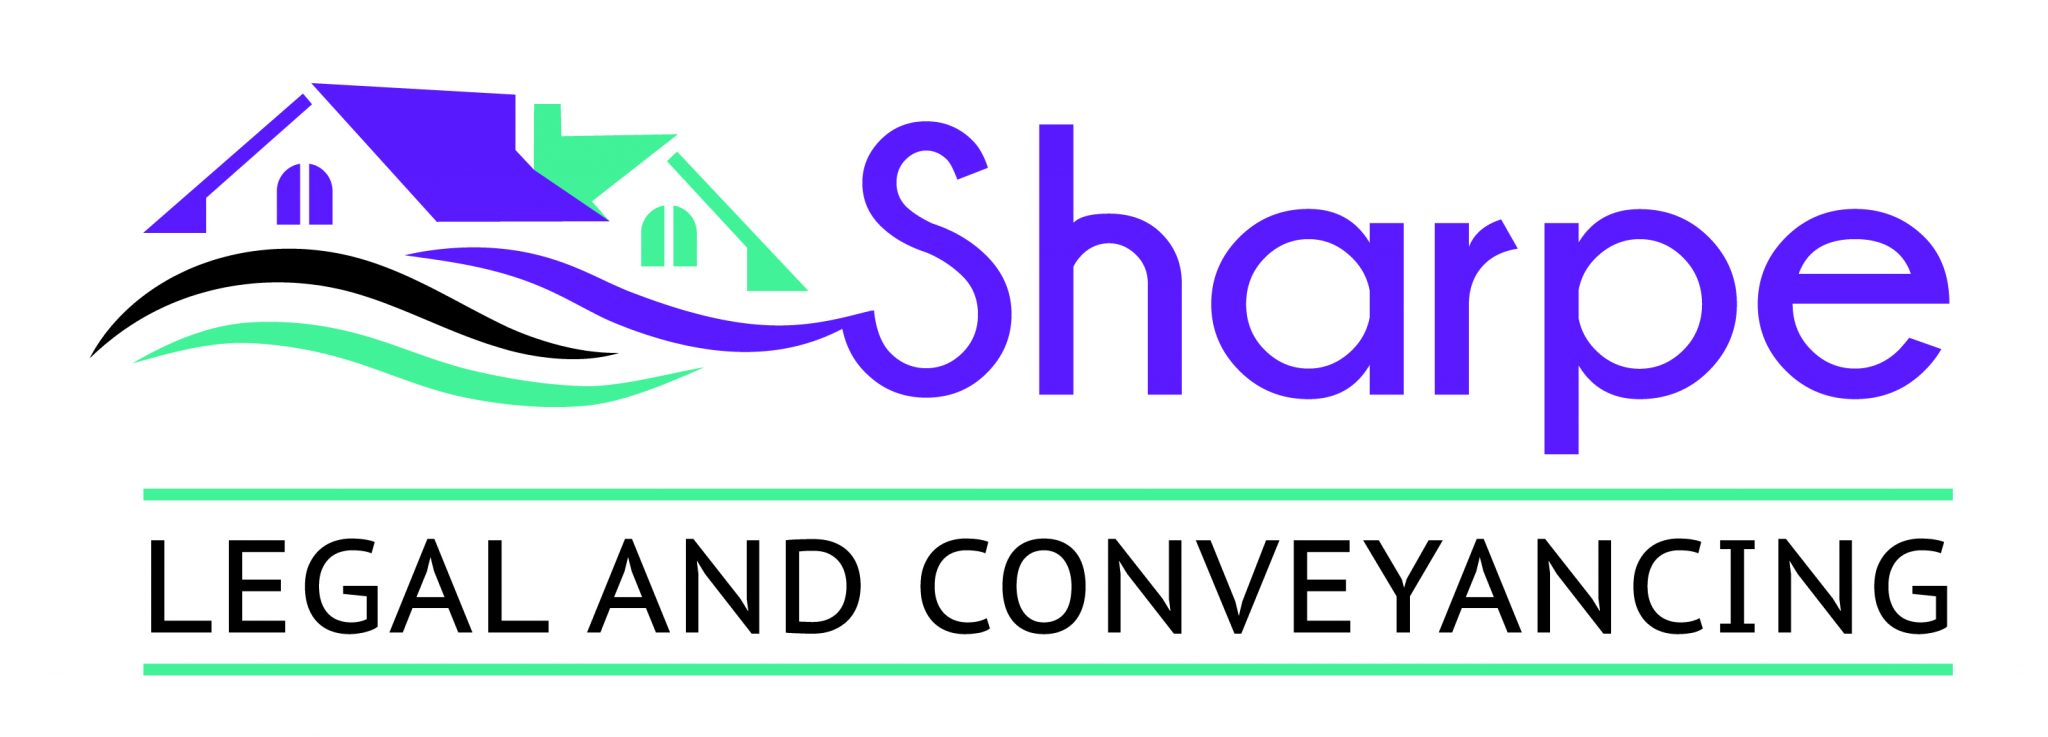 Sharpe_Legal_Conveyancing_Logo_1608_Horizontal